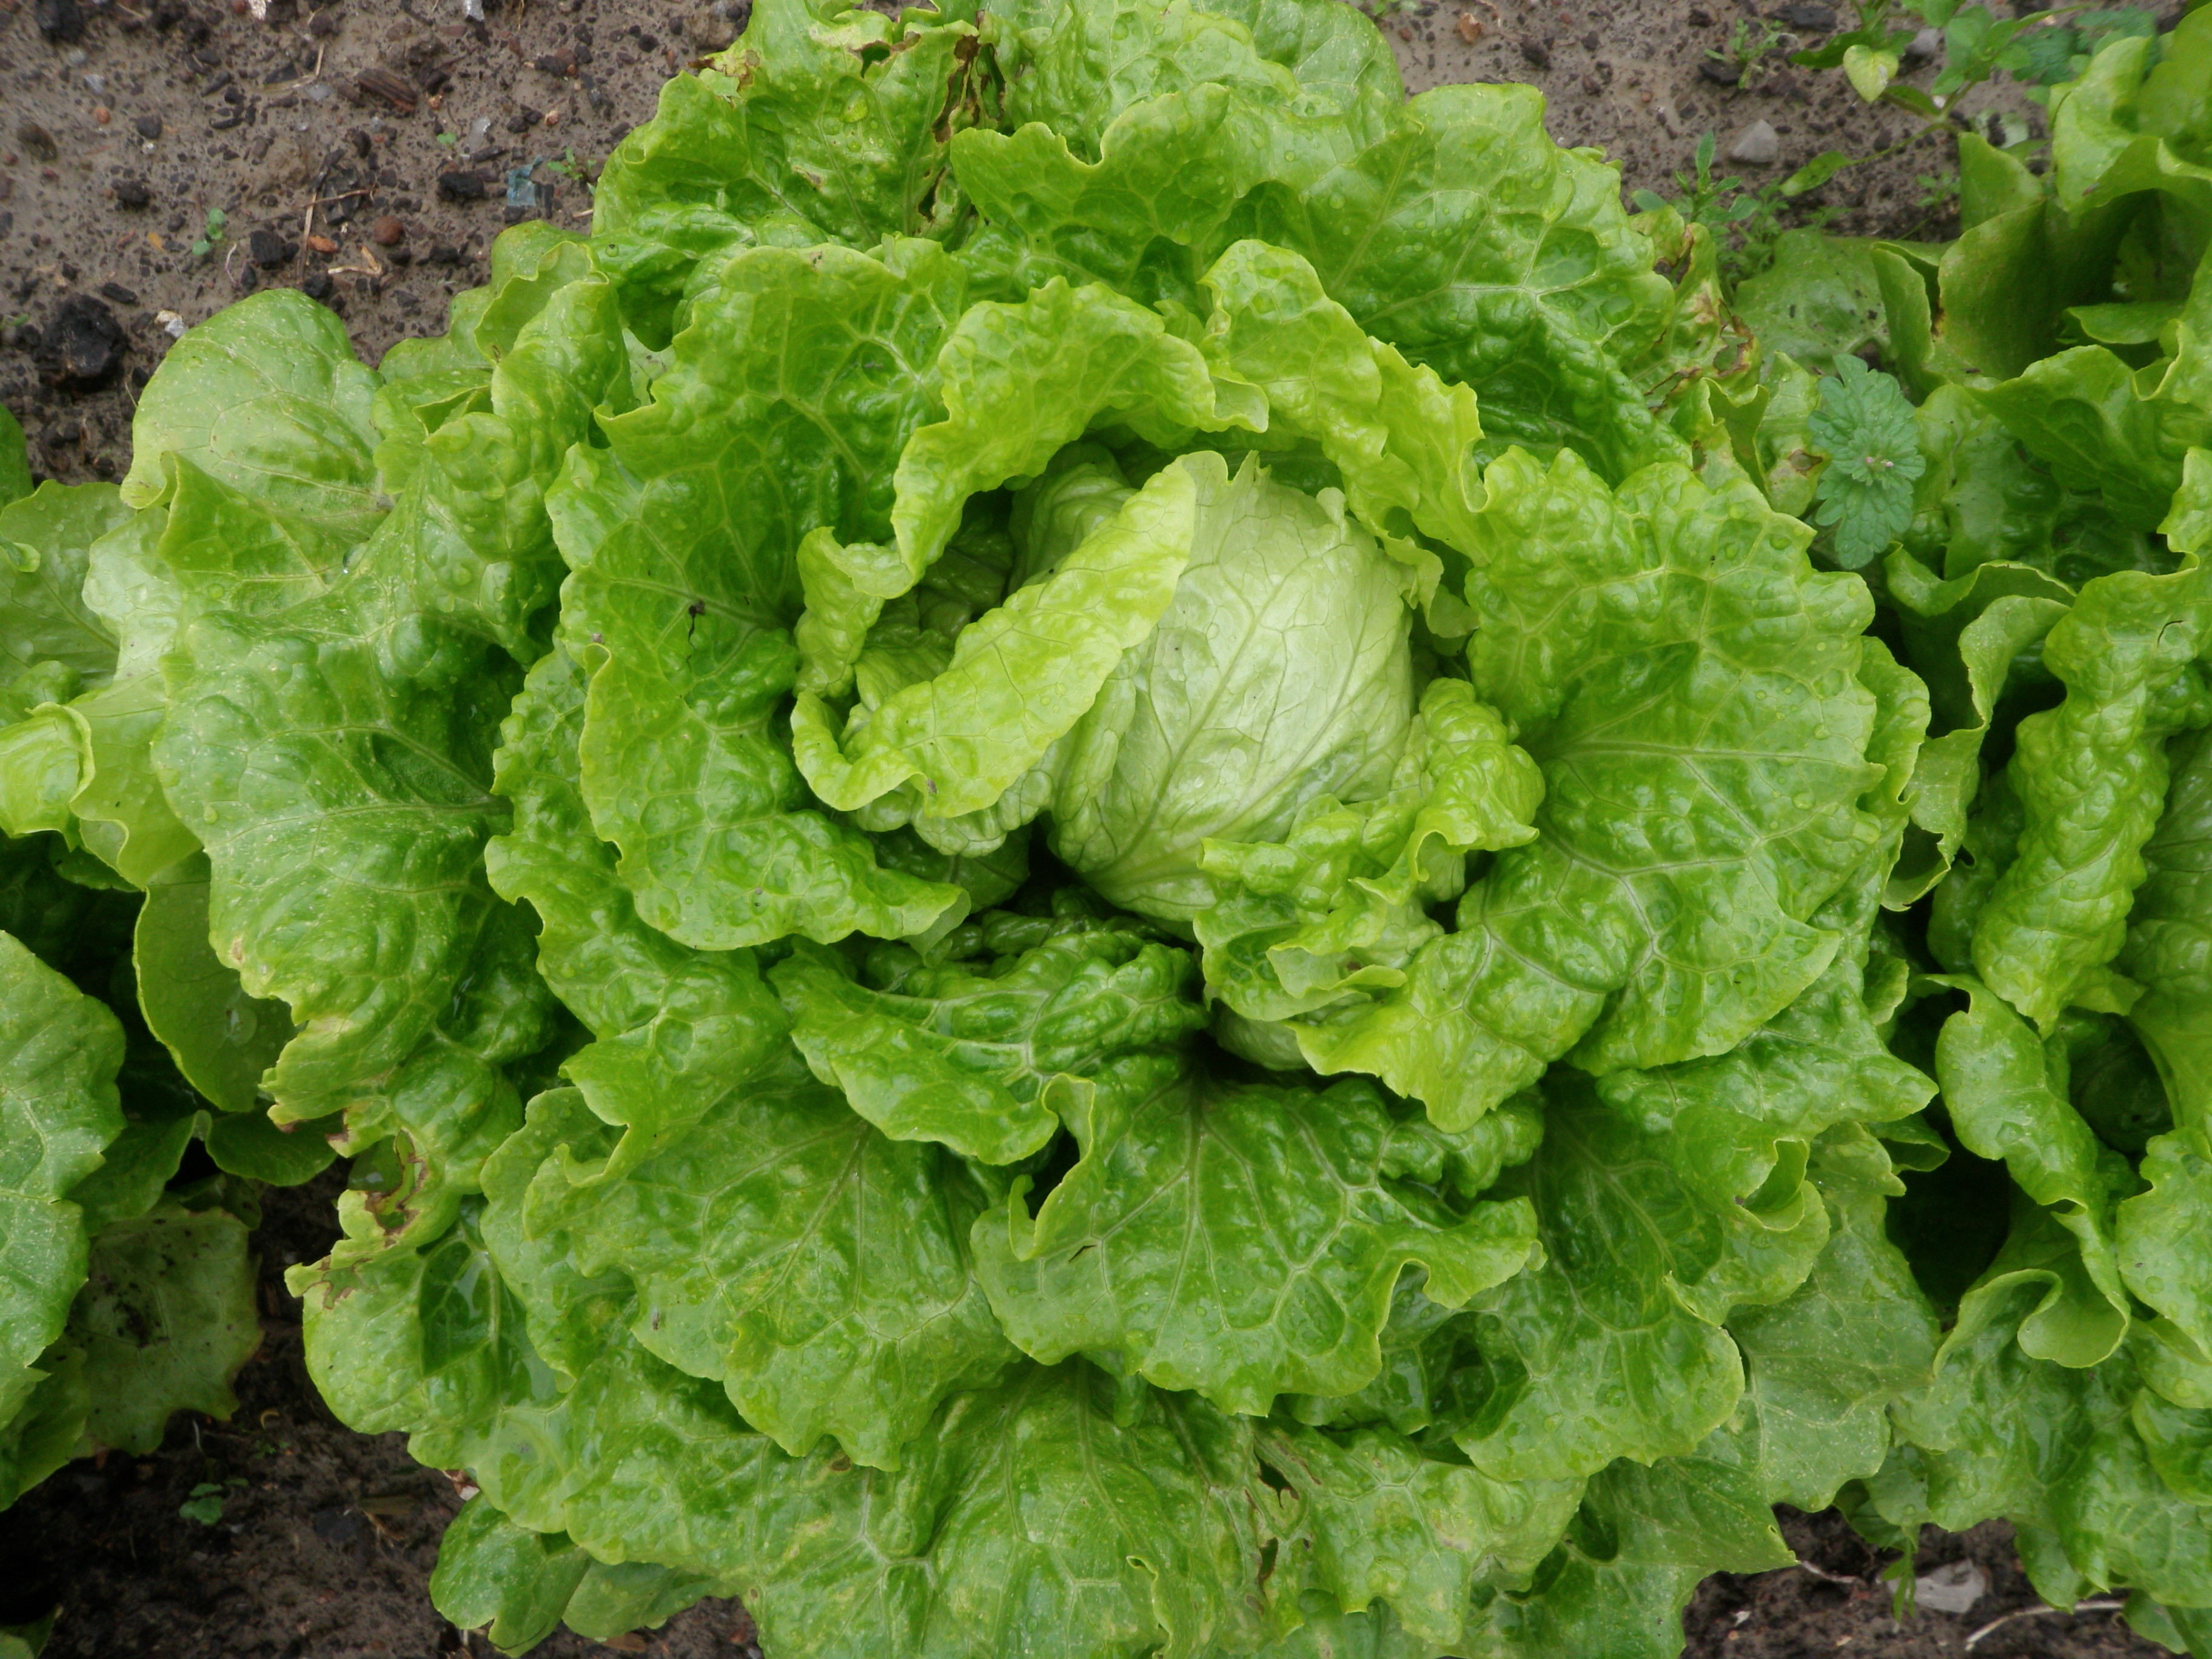 Grow a salad this winter